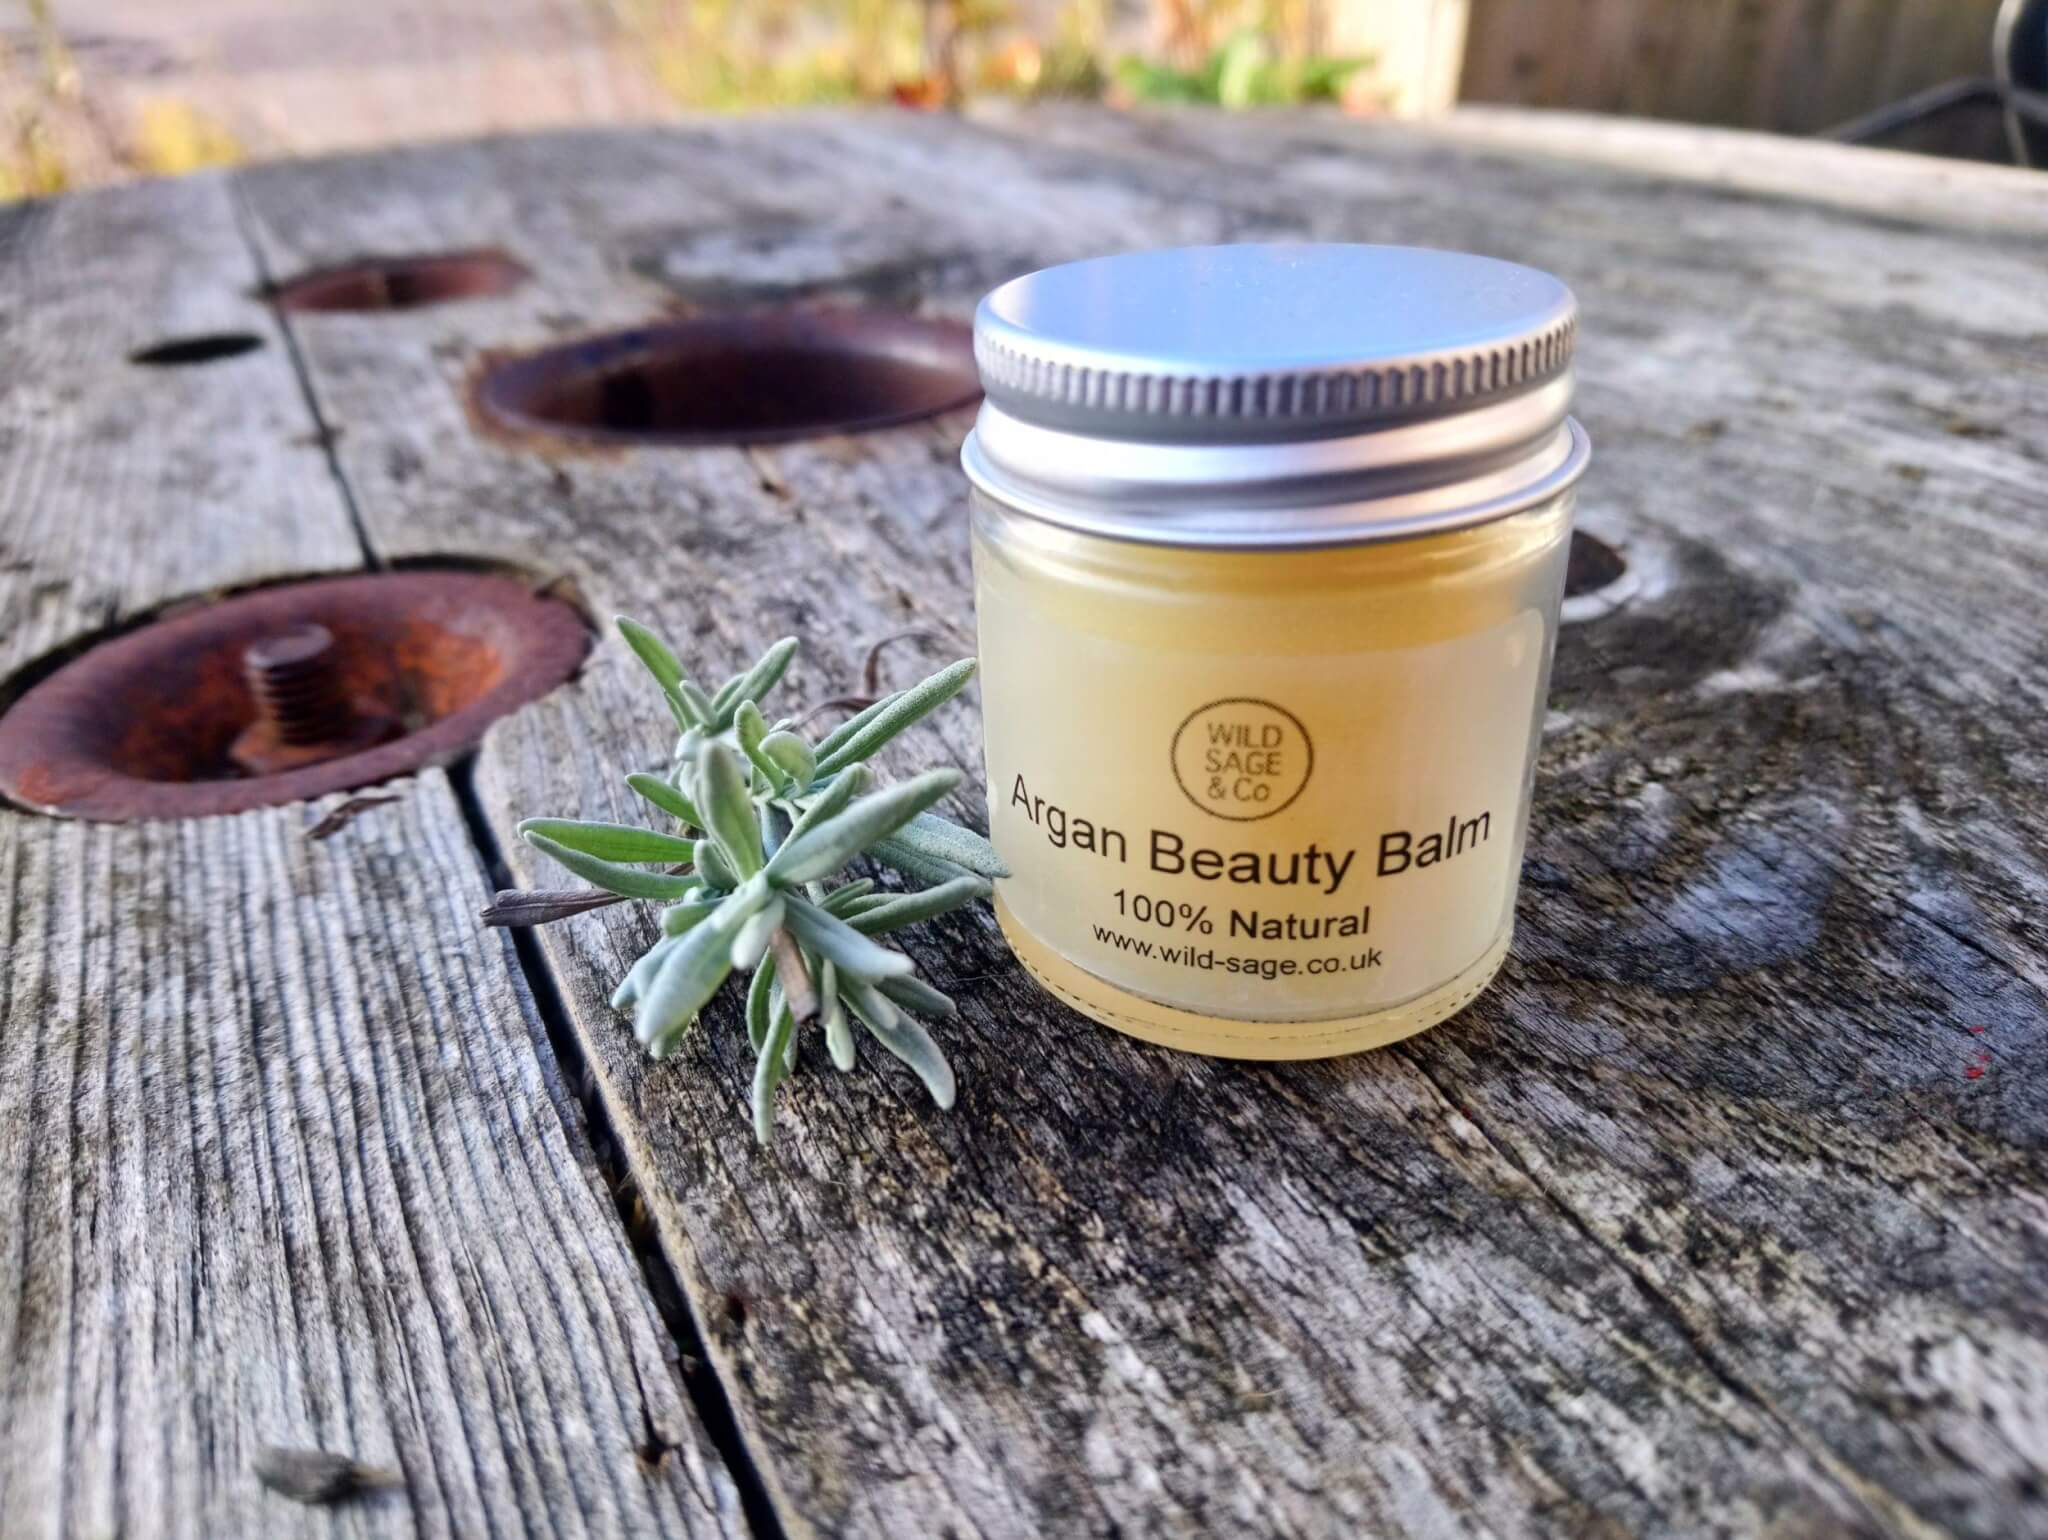 Wild sage and co argan balm